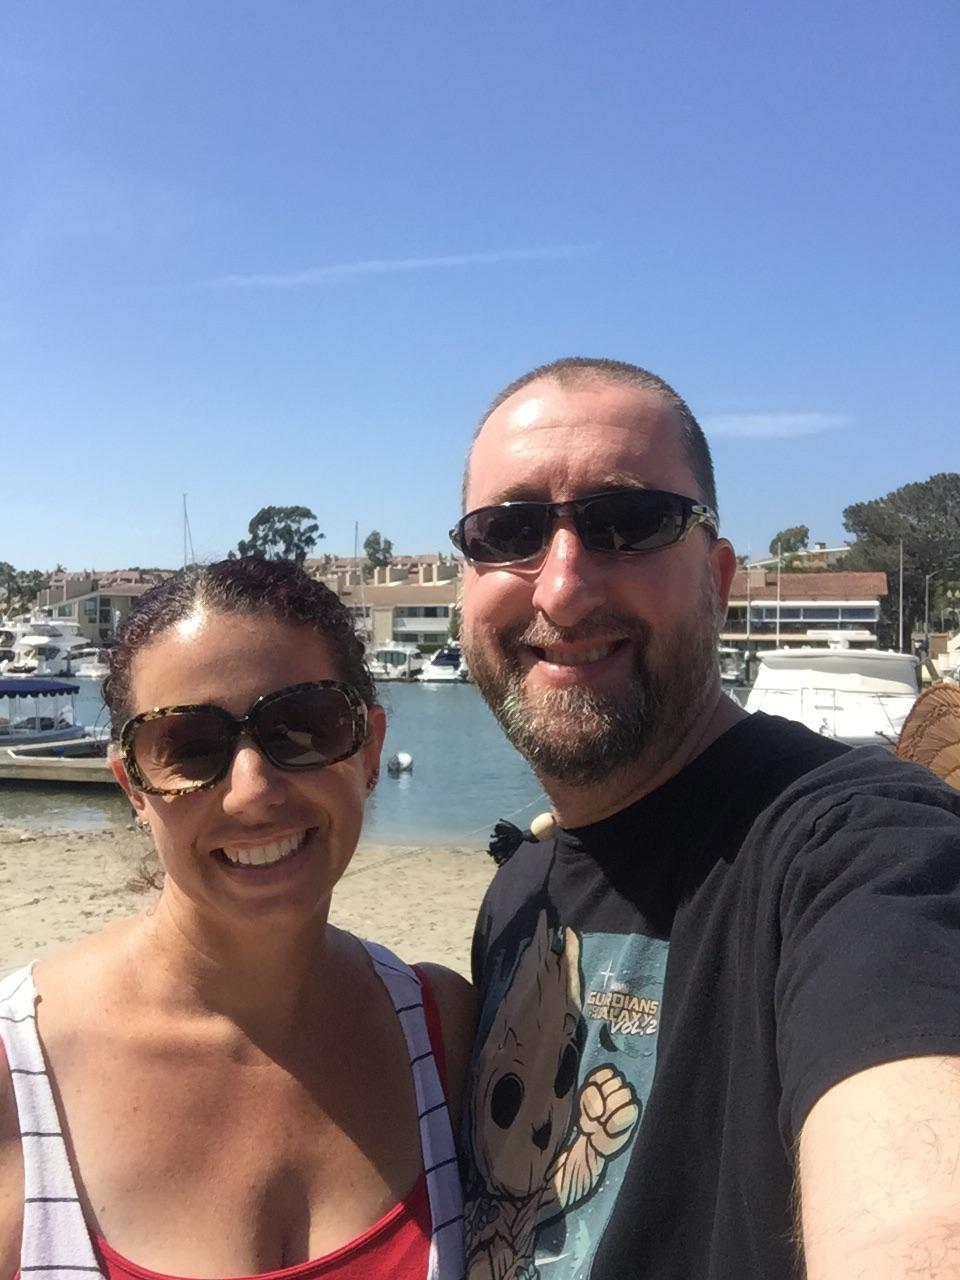 Mr. Barr and his wife selfie at the beach.